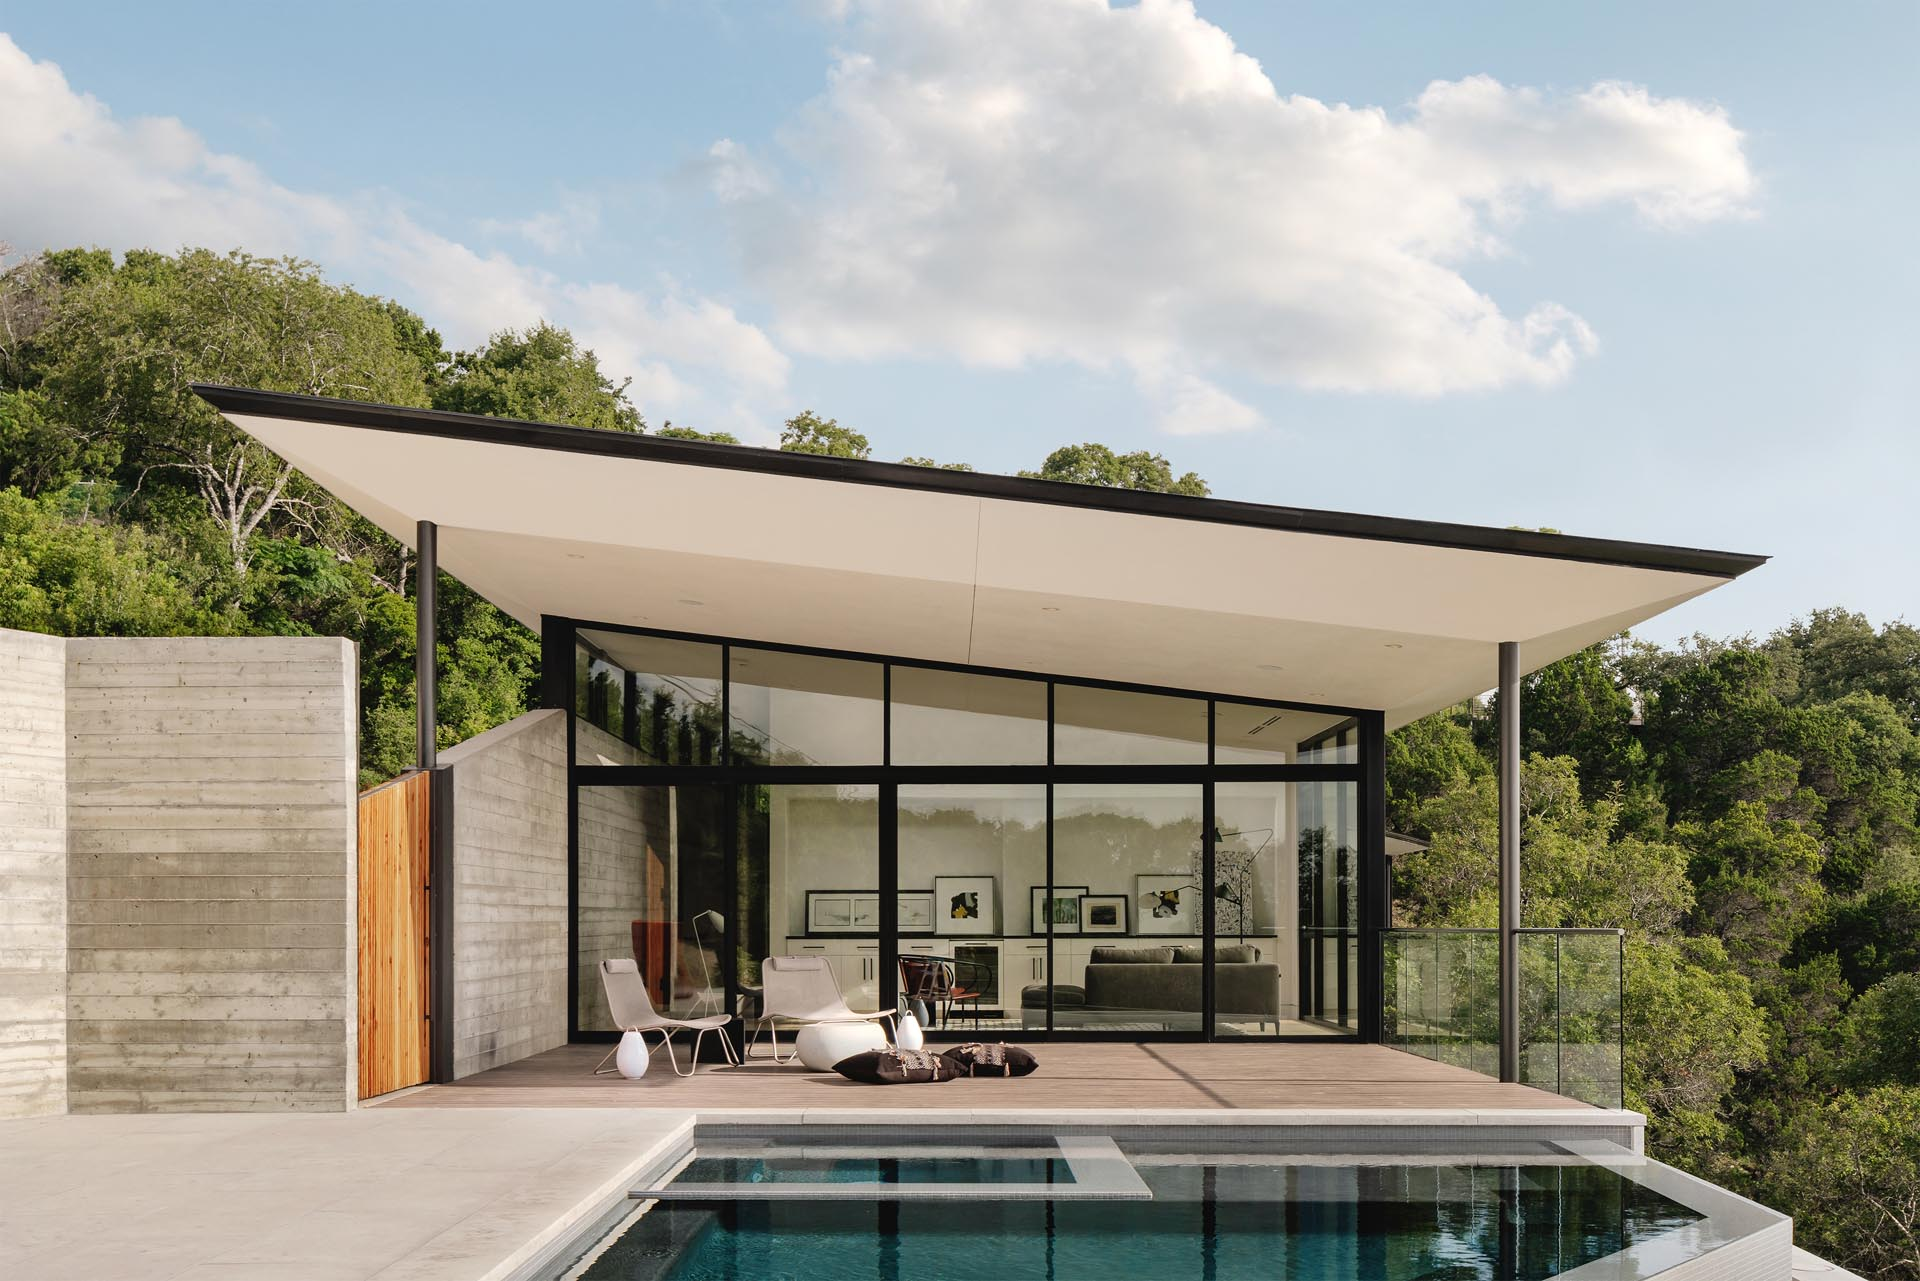 The boomerang shape of the home accentuate the natural curvature of the land, while high walls lined with clerestory windows create a buffer between the busy adjacent road while also balancing light throughout the day.